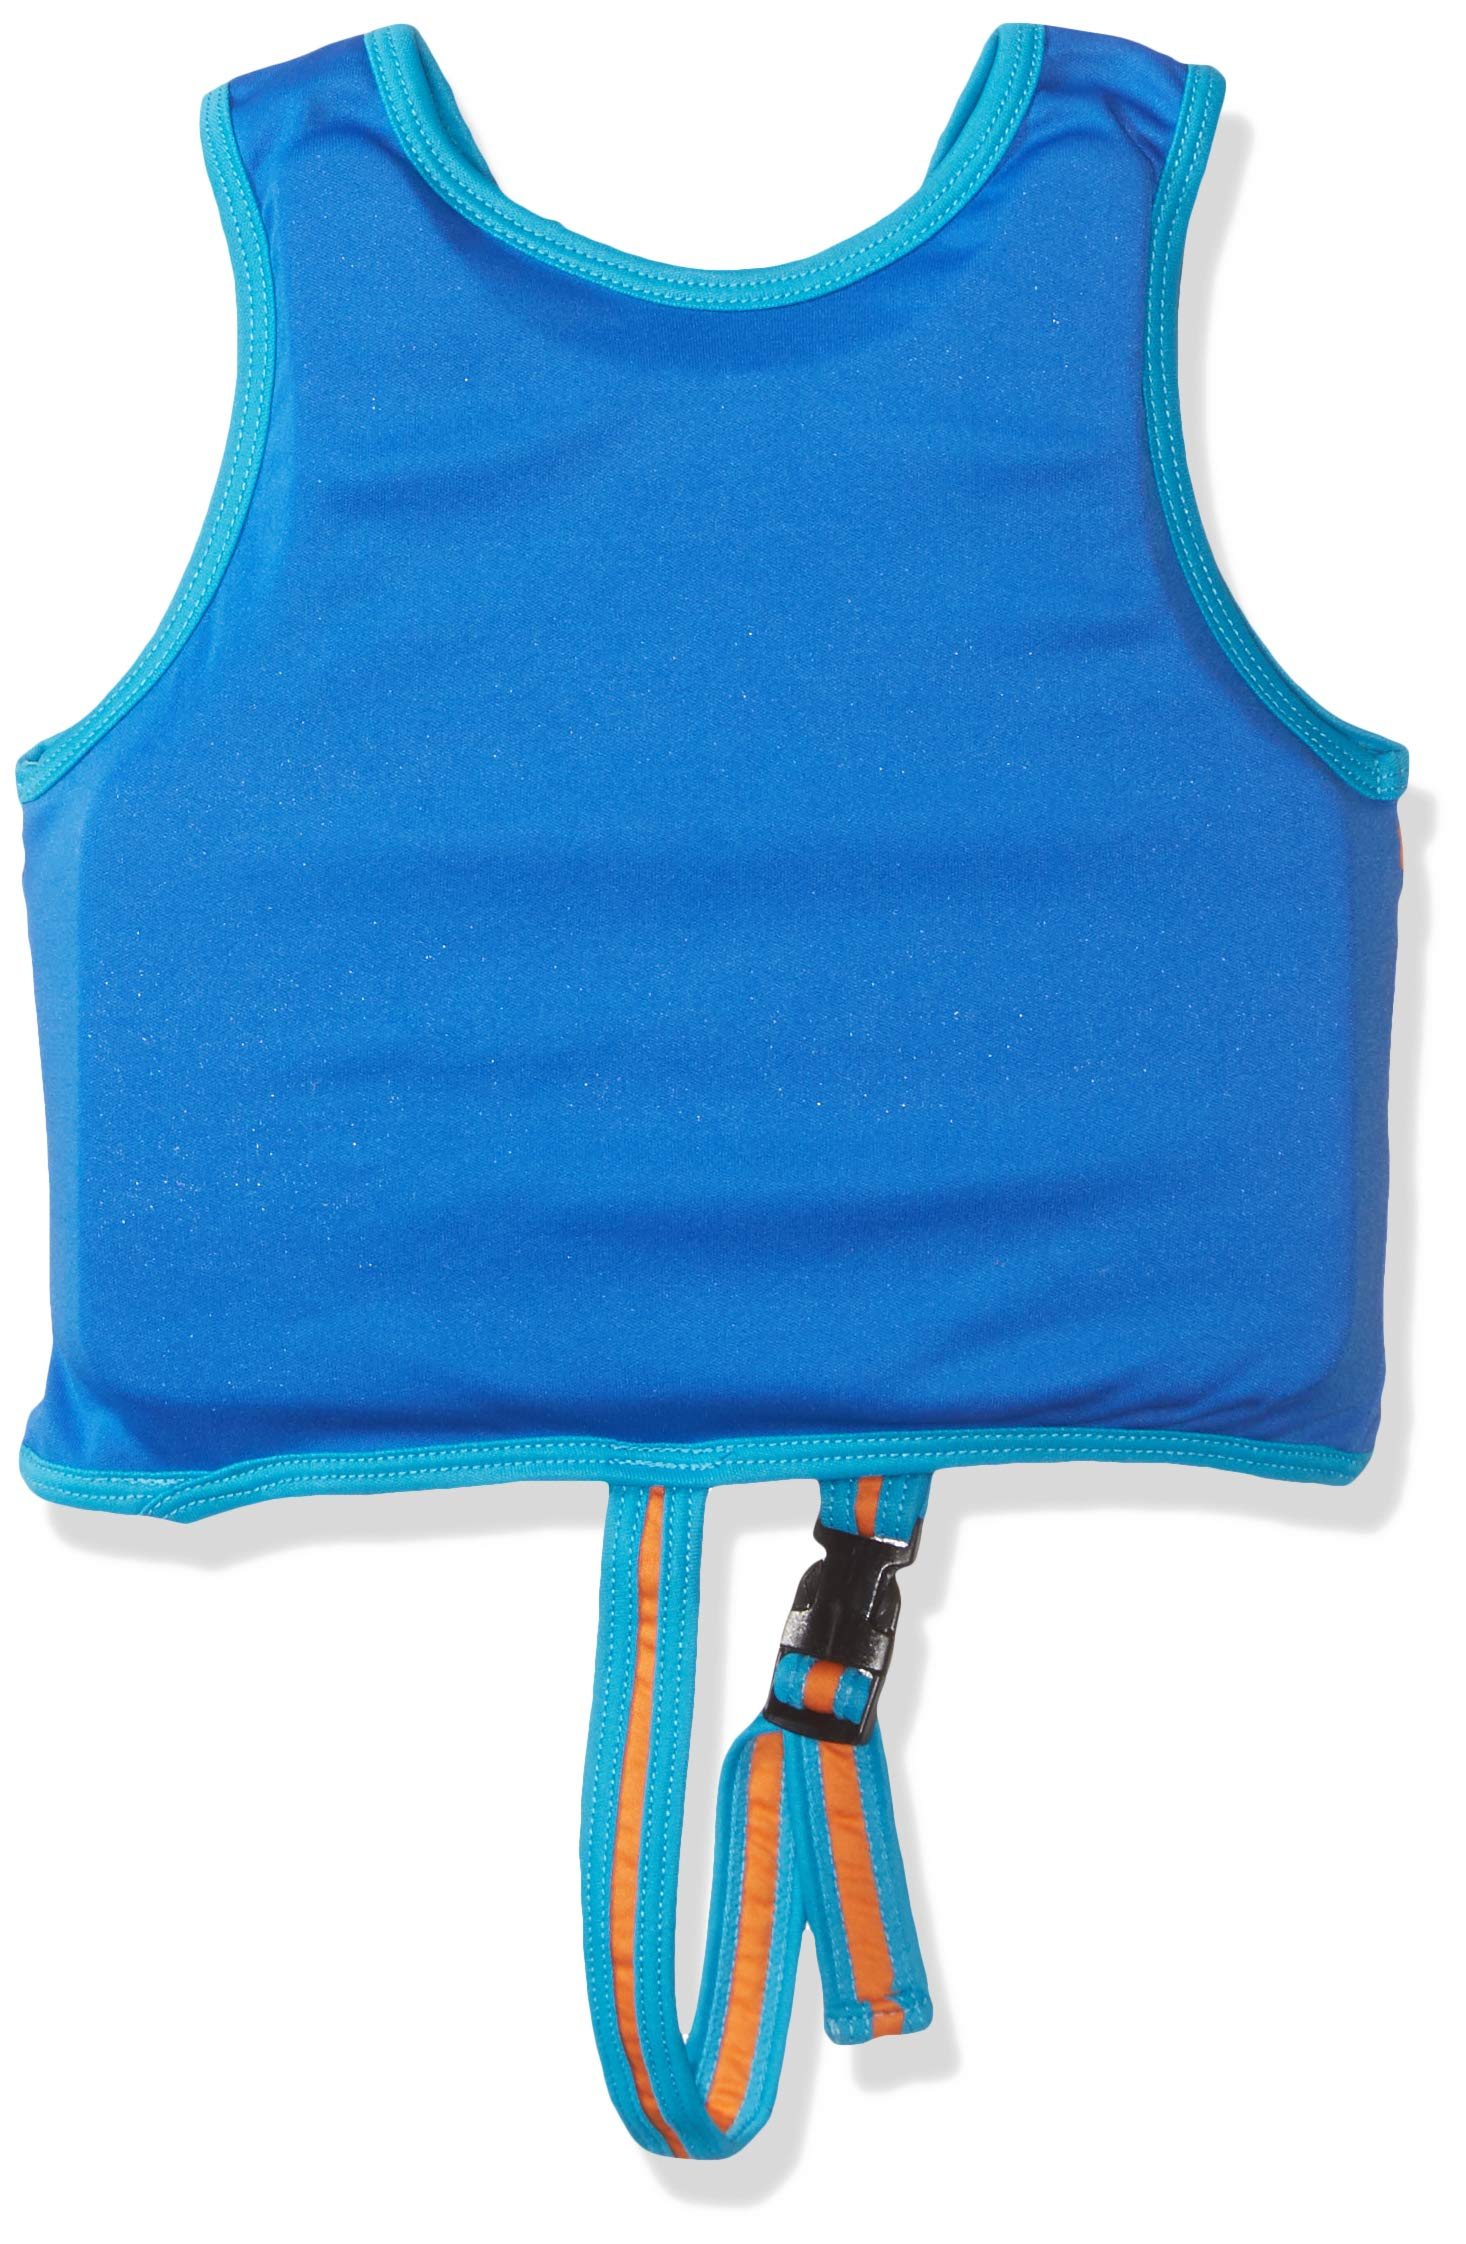 SwimSchool New & Improved Swim Trainer Vest, Flex-Form, Adjustable Safety Strap, Easy on and Off, Small/Medium, Up to 33 lbs., Blue/Orange by SwimSchool (Image #2)